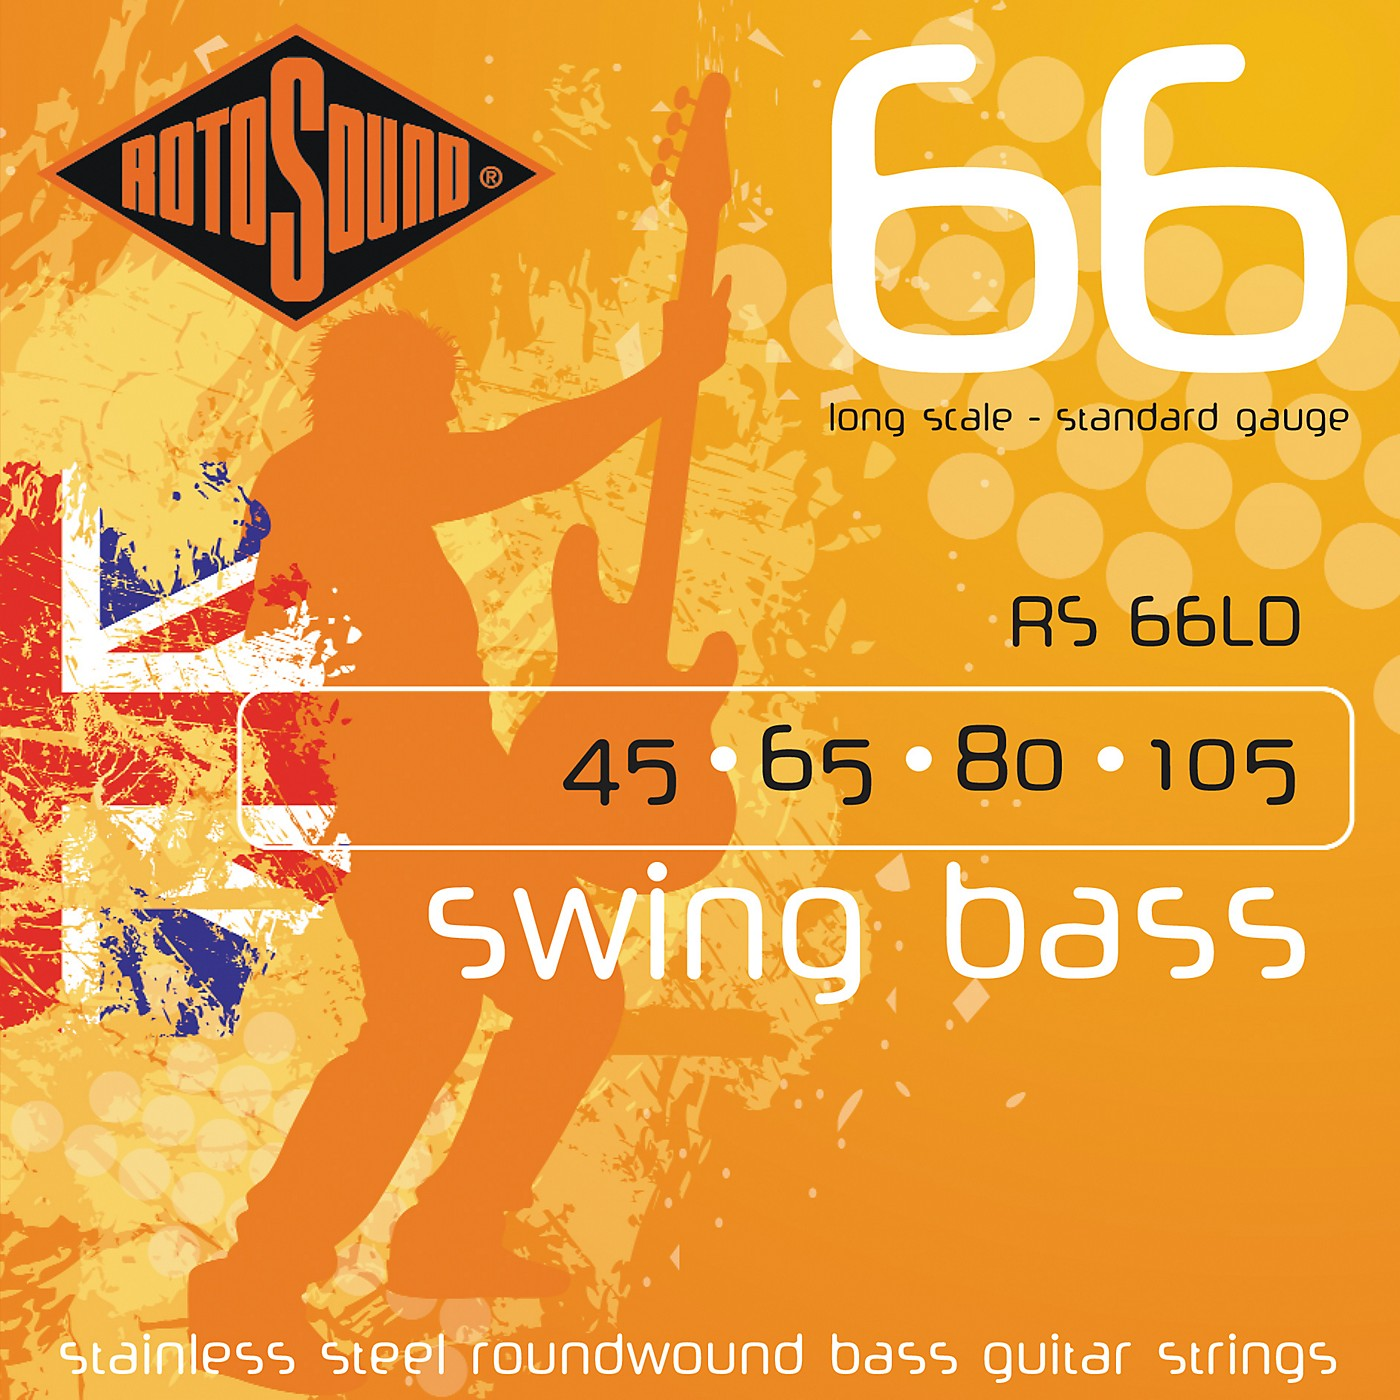 Rotosound RS66LD Long Scale Swing 66 Bass Strings thumbnail